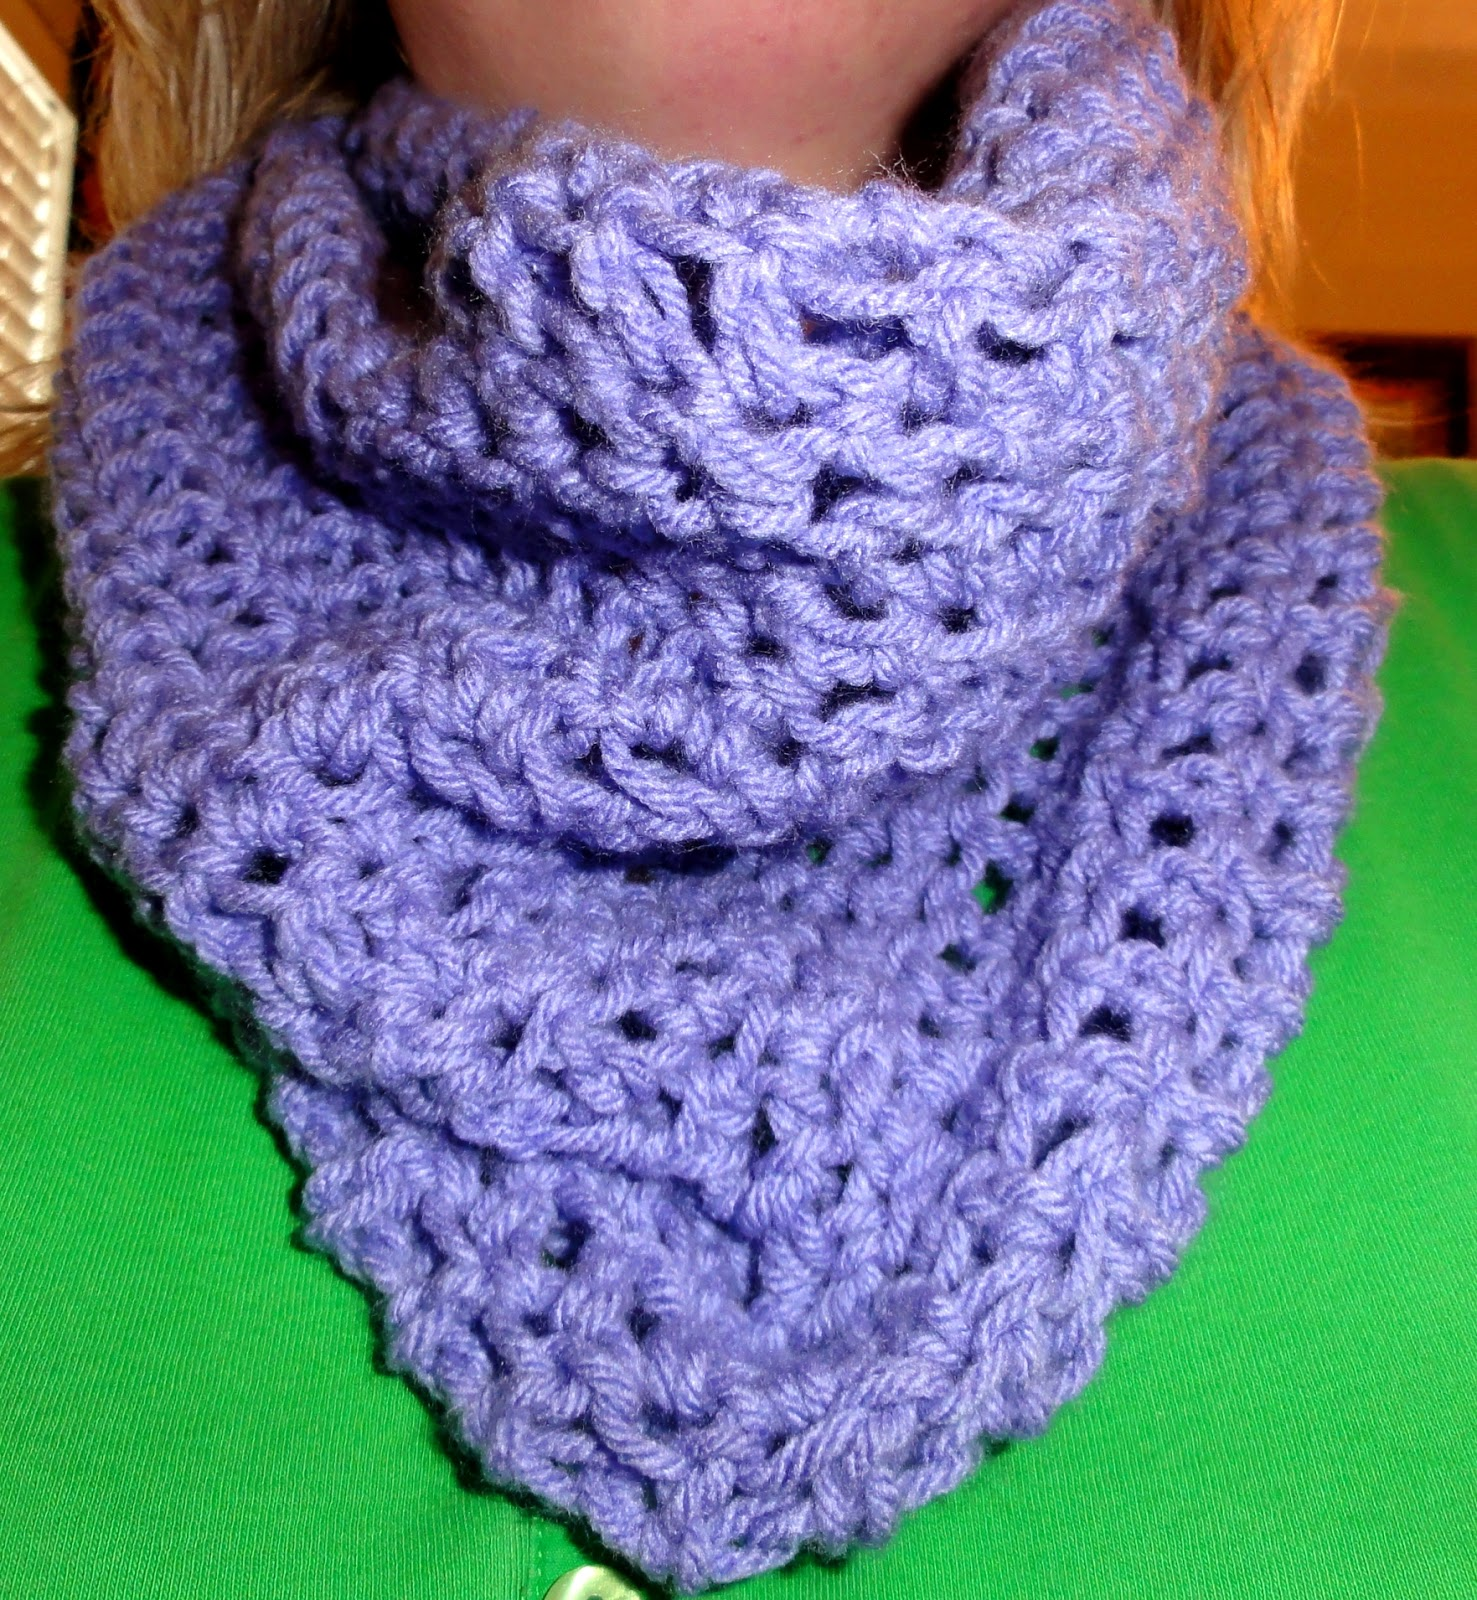 Crocheting Too Loose : Cheri Quite Contrary: Crochet Convertible Cowl Adventures